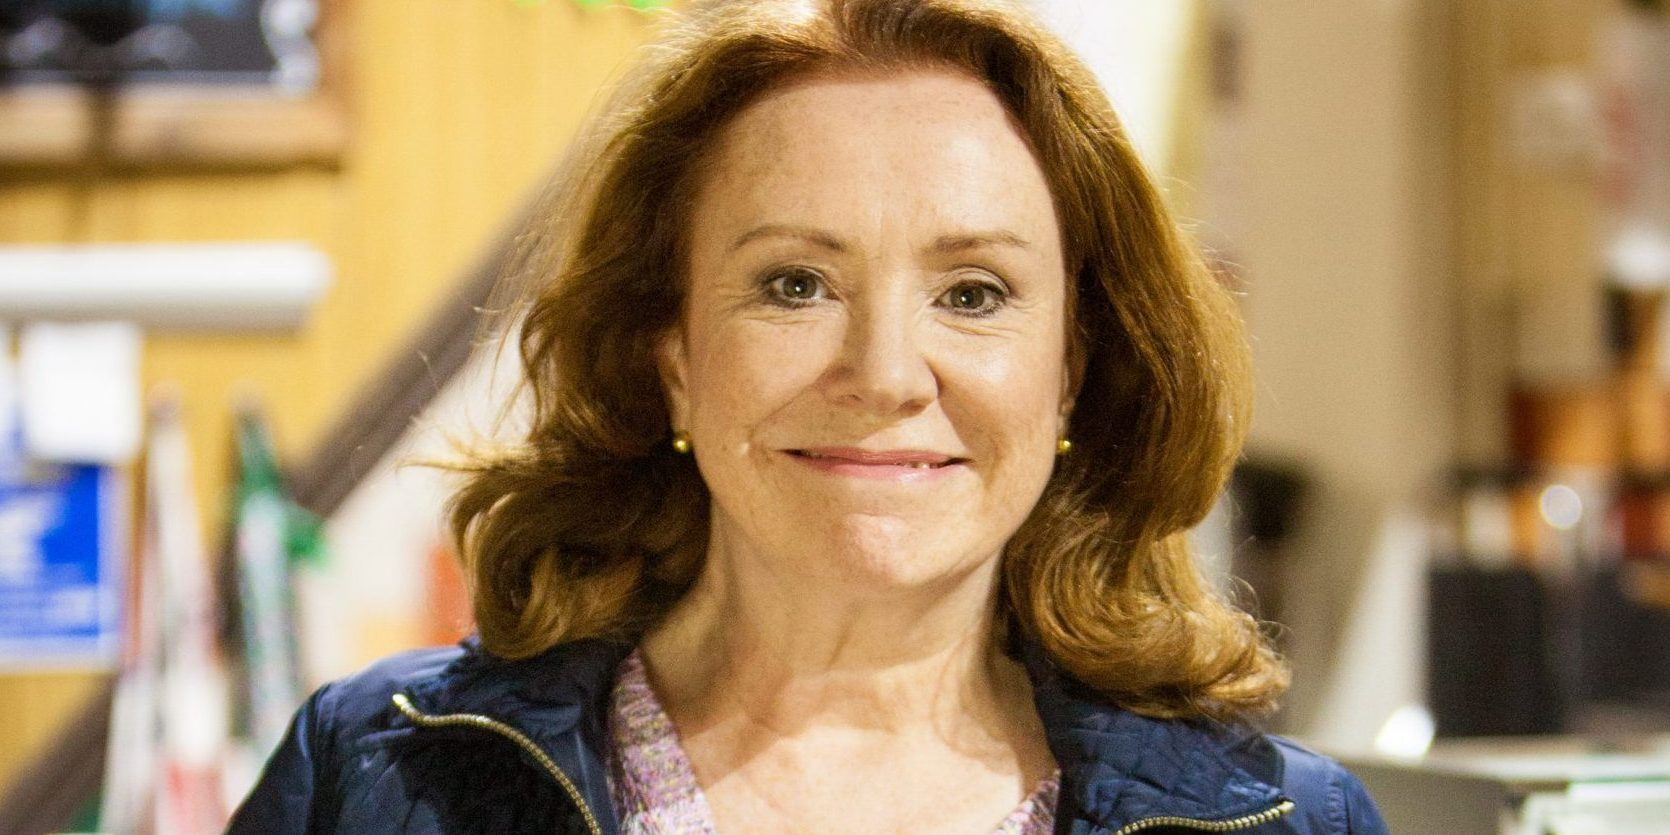 Coronation Street's Melanie Hill confirms soap will continue filming soon